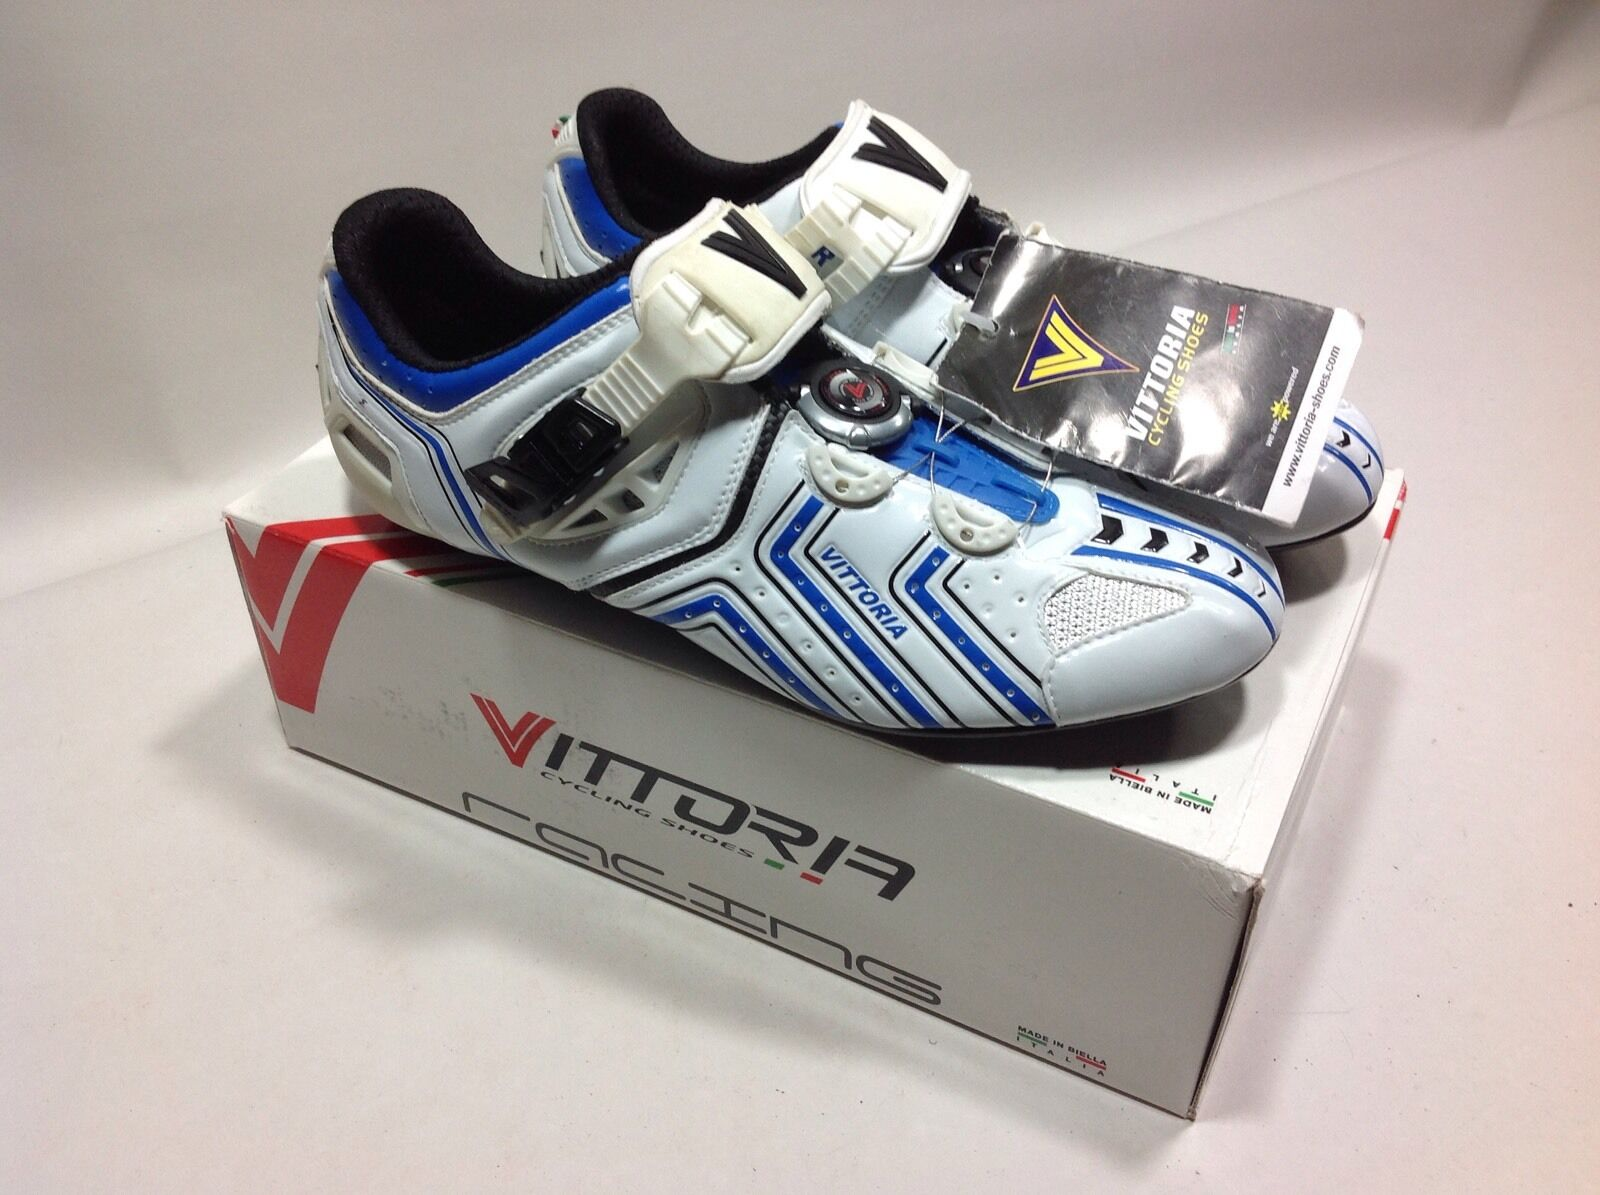 Vittoria Hora Road Cycling shoes 42 US white-bluee micrometric cable